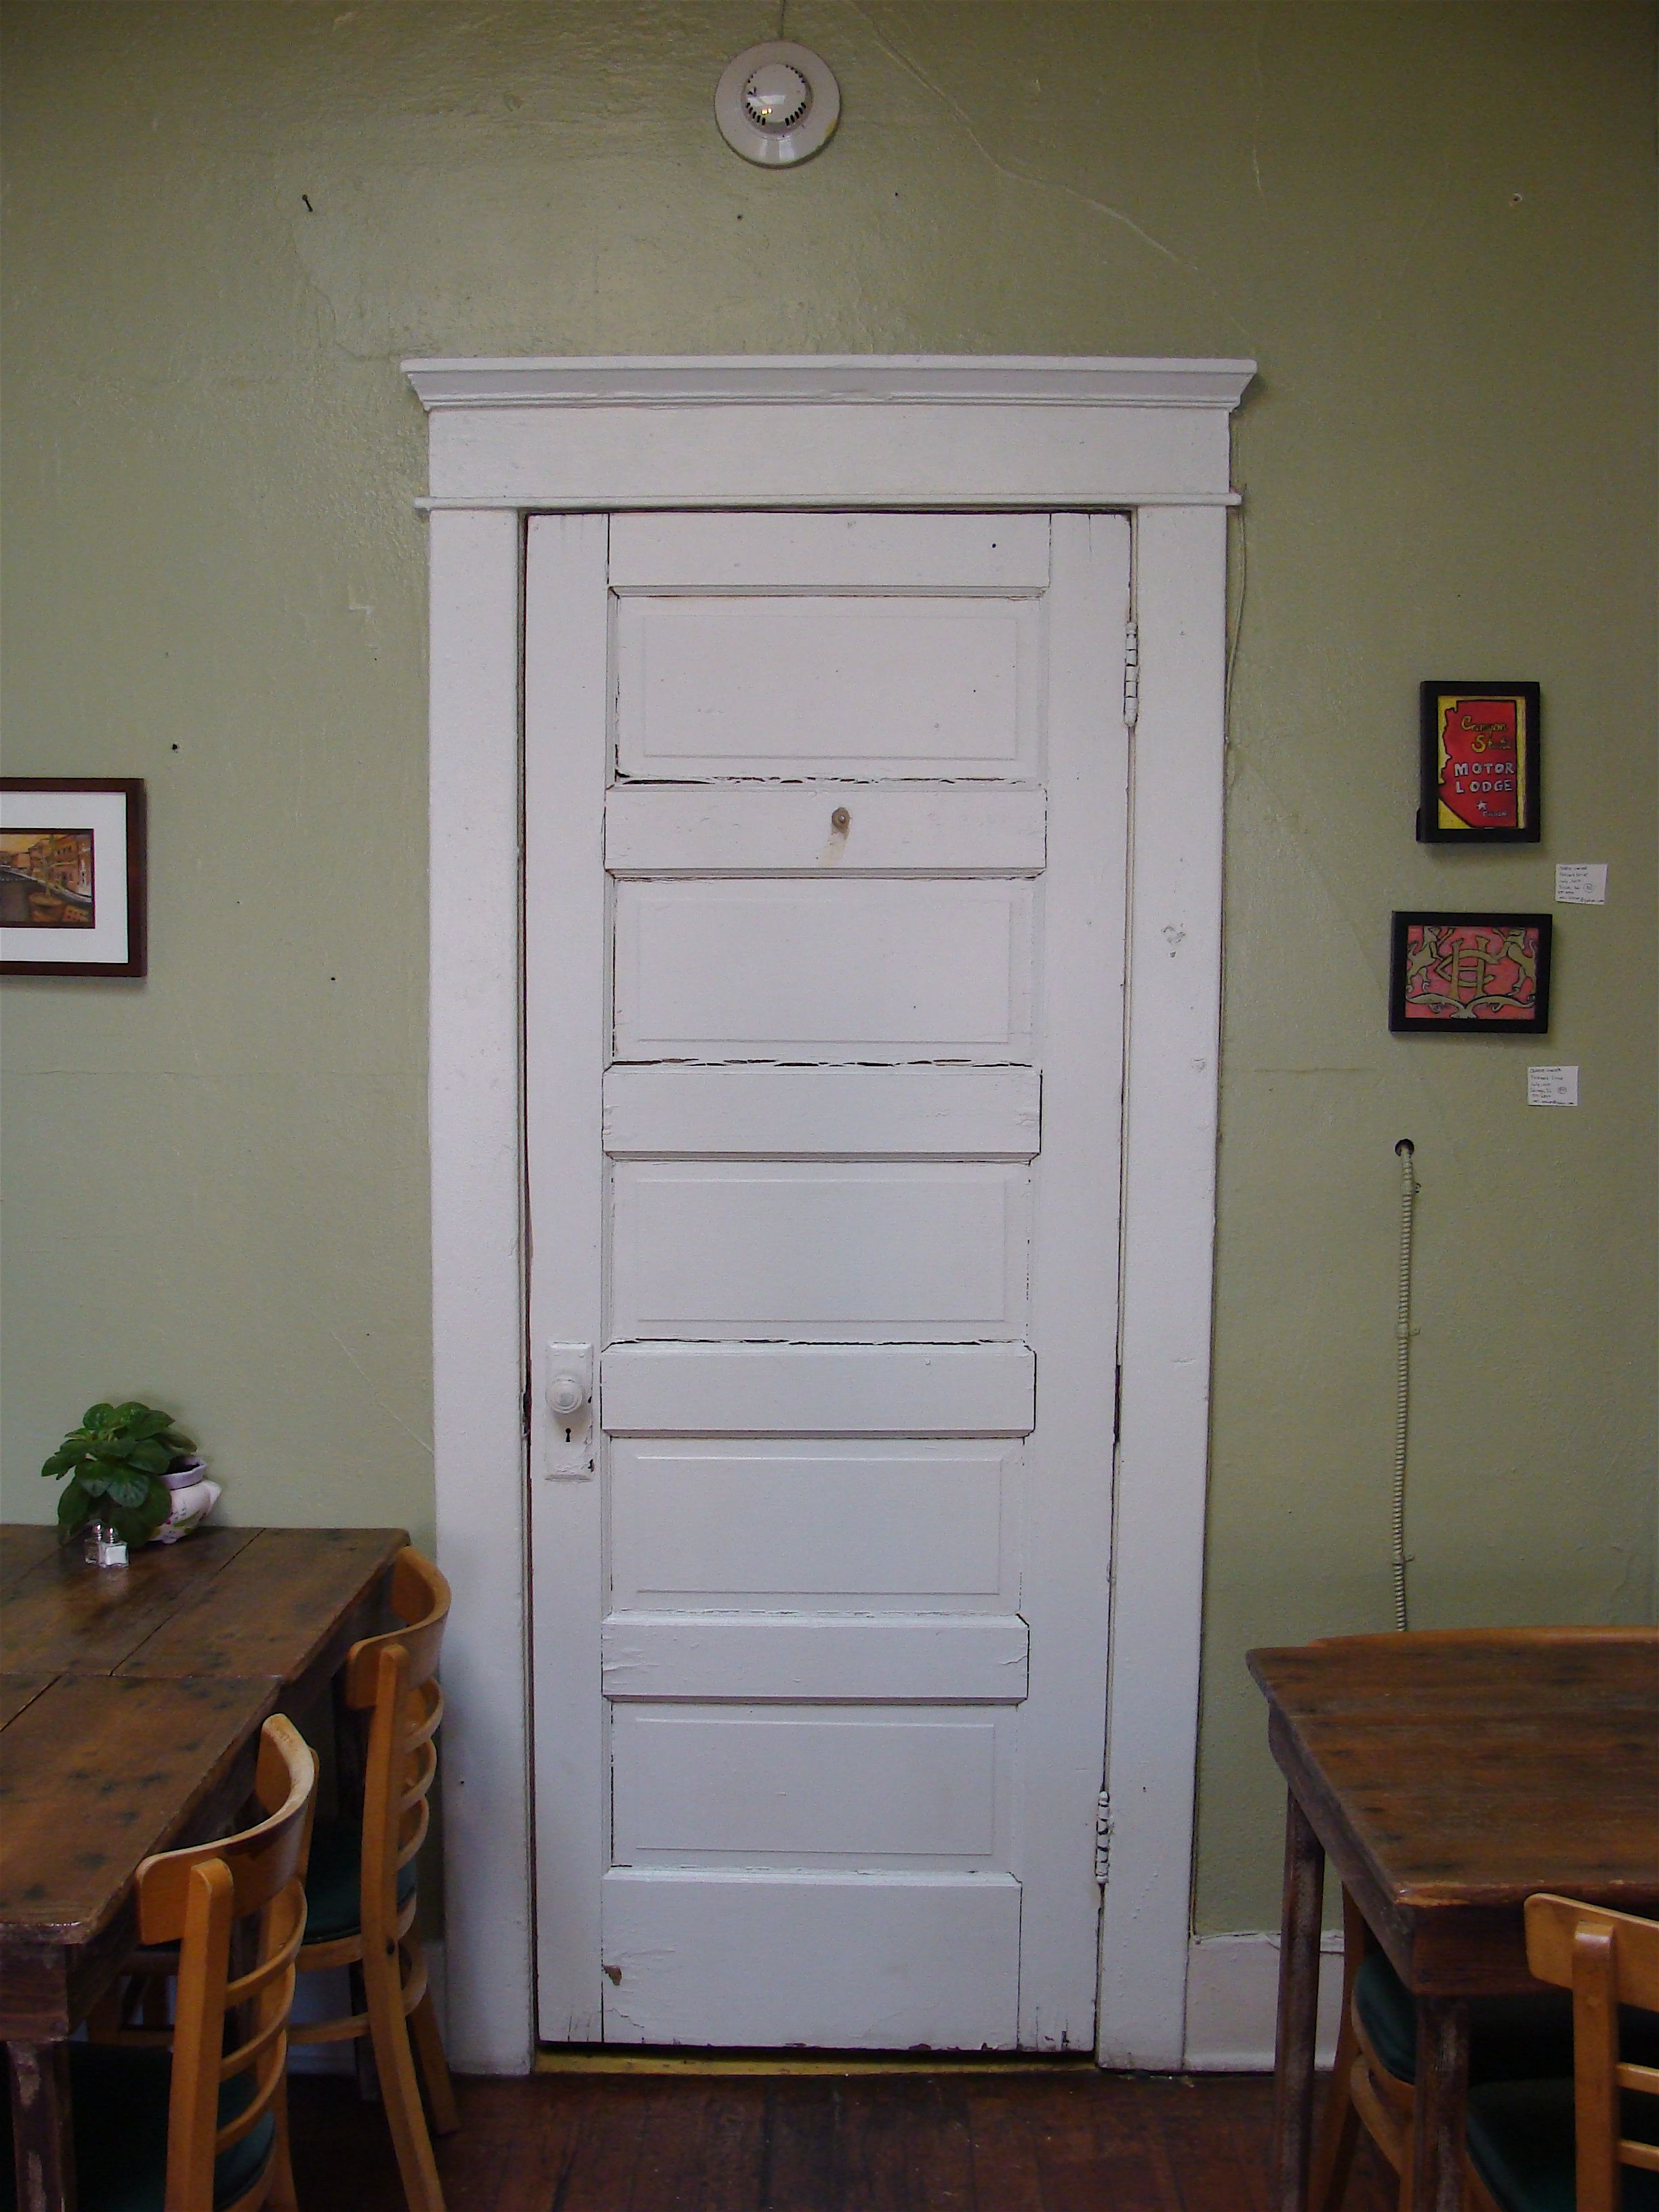 find this pin and more on kitchen ideas craftsman style door surround moldings - Interior Door : door moldings - Pezcame.Com